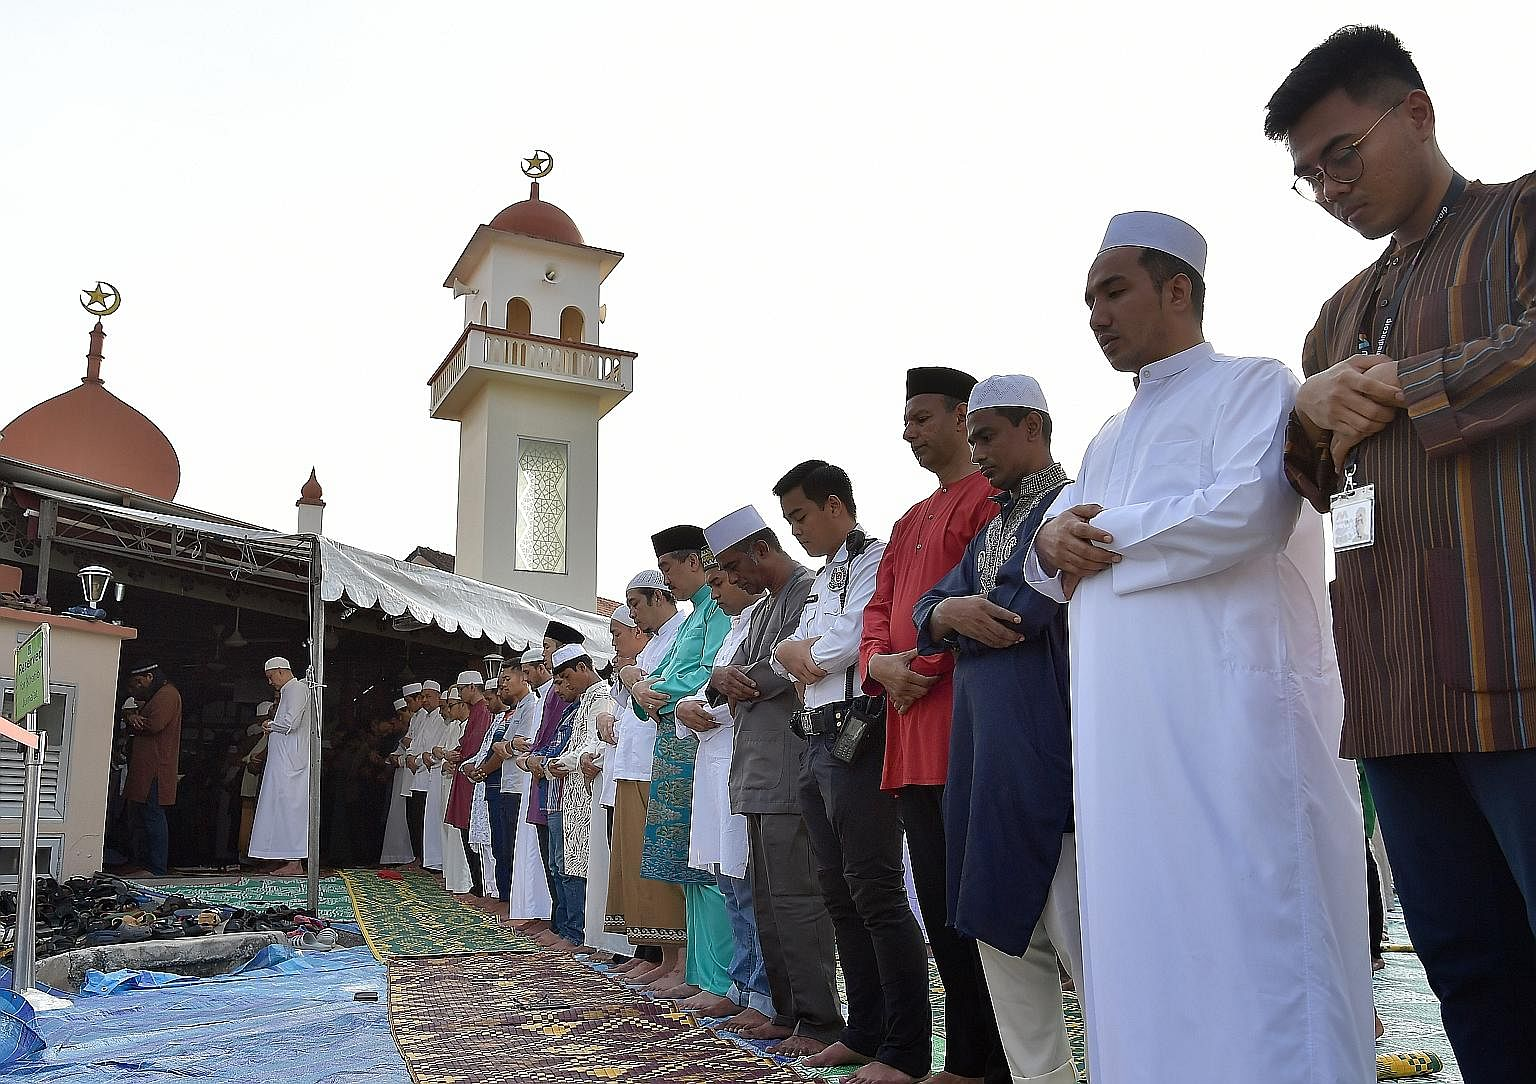 More than 1,000 Muslims gathered at the Abdul Razak Mosque yesterday morning, with many doing their Hari Raya Haji prayers on the road, along Jalan Ismail, off Jalan Eunos. To ensure that the mosque's volunteers could also join in the prayers, volunt